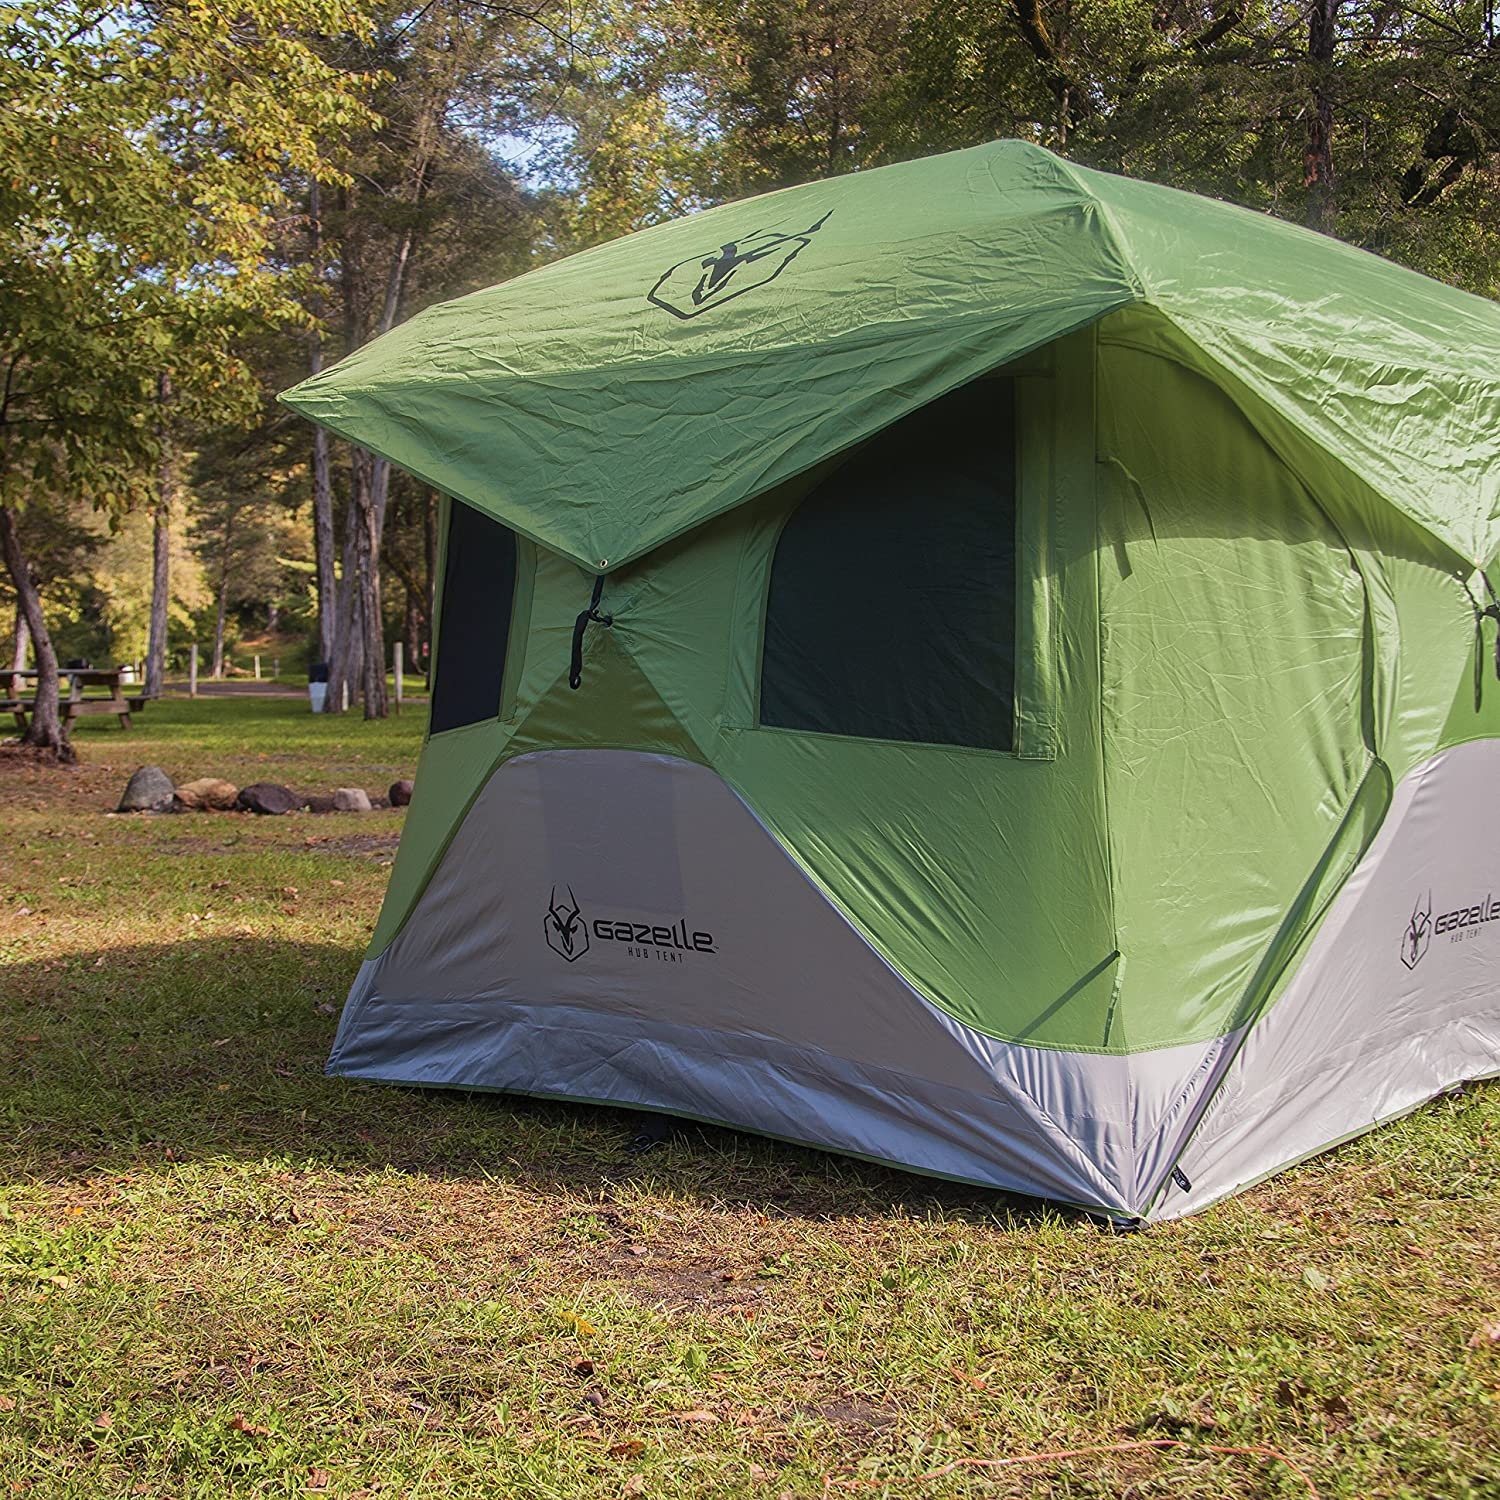 Amazon.com : Gazelle 33300 T3 Pop Up Portable Camping Hub Tent, 3 Person : Sports & Outdoors